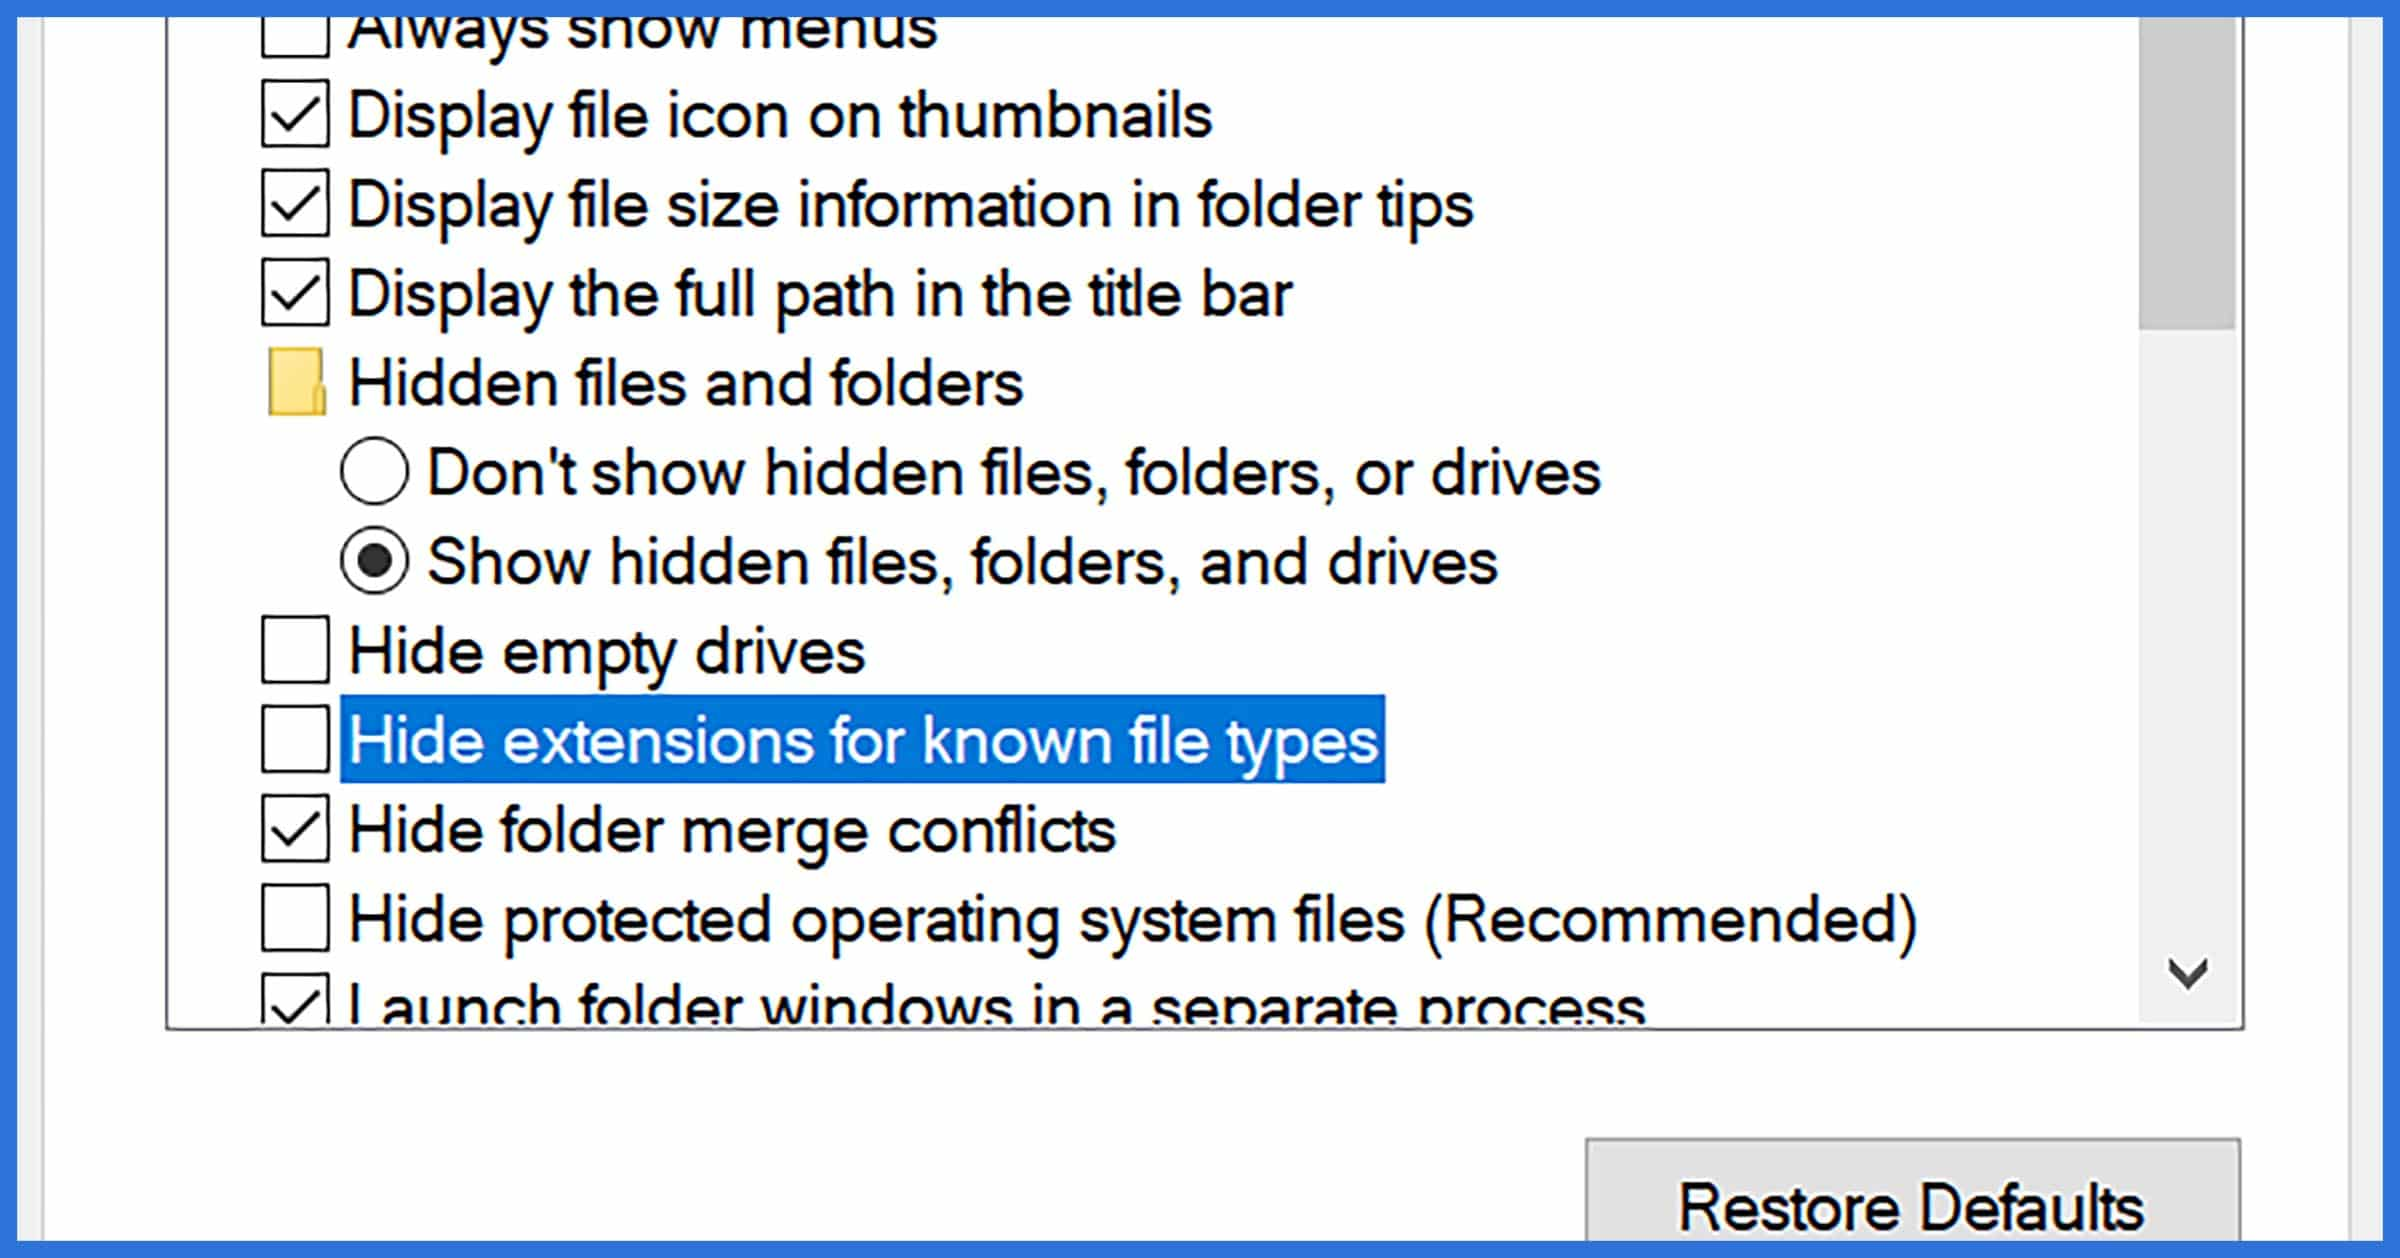 Hide extensions for known file types